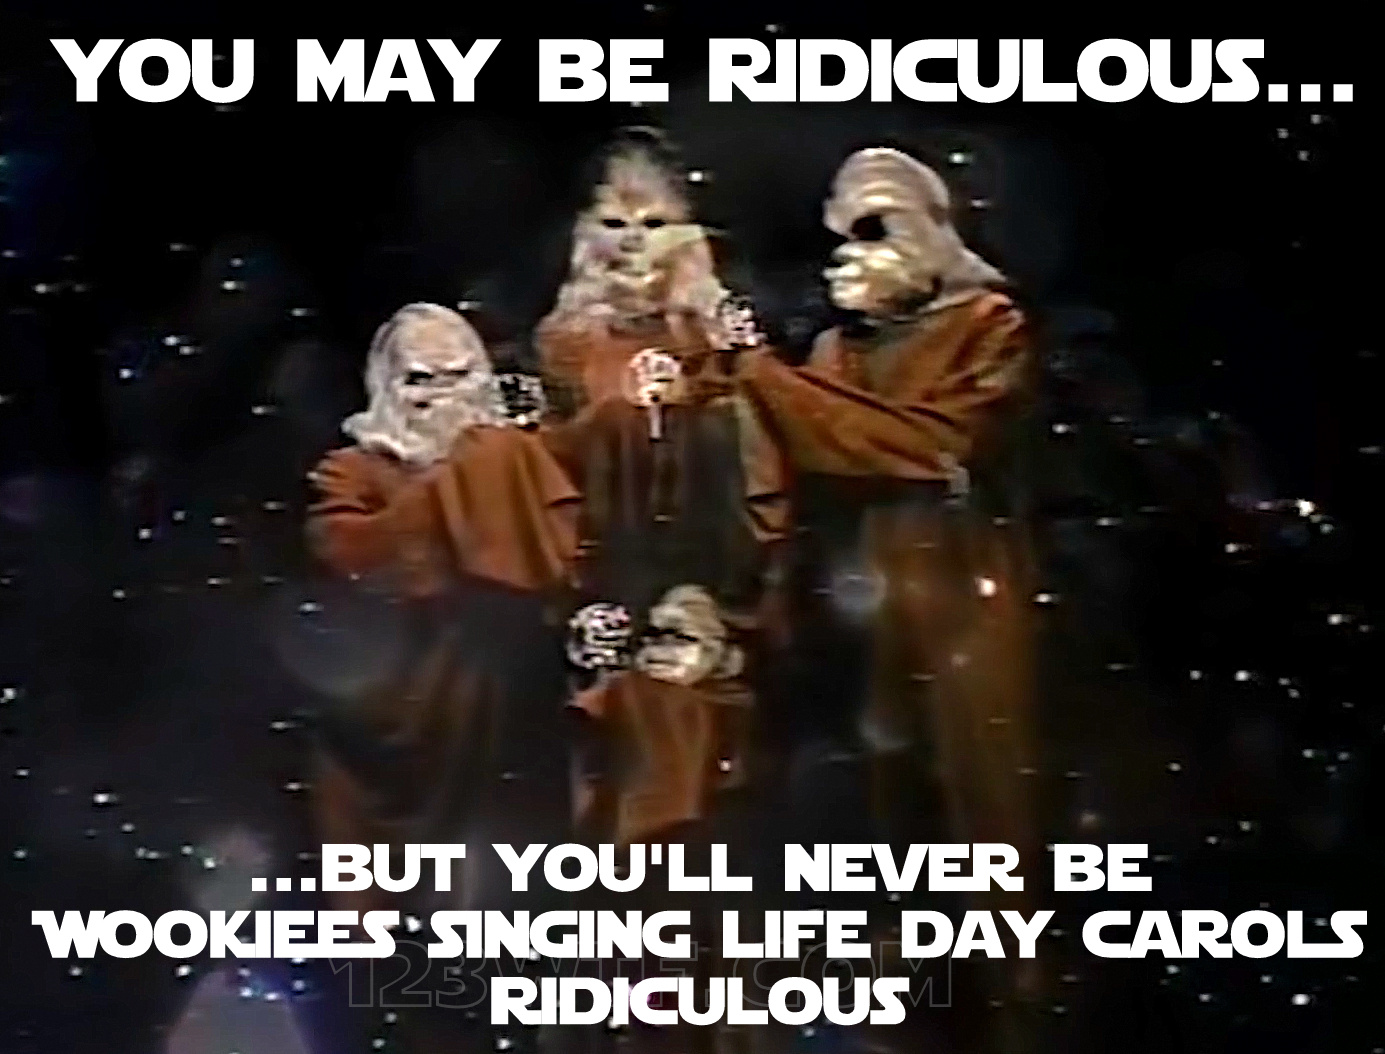 star wars holiday special 31 meme ridiculous 123wtf saint pauly wtf the star wars holiday special (1978) 1,2,3 wtf!? (watch the